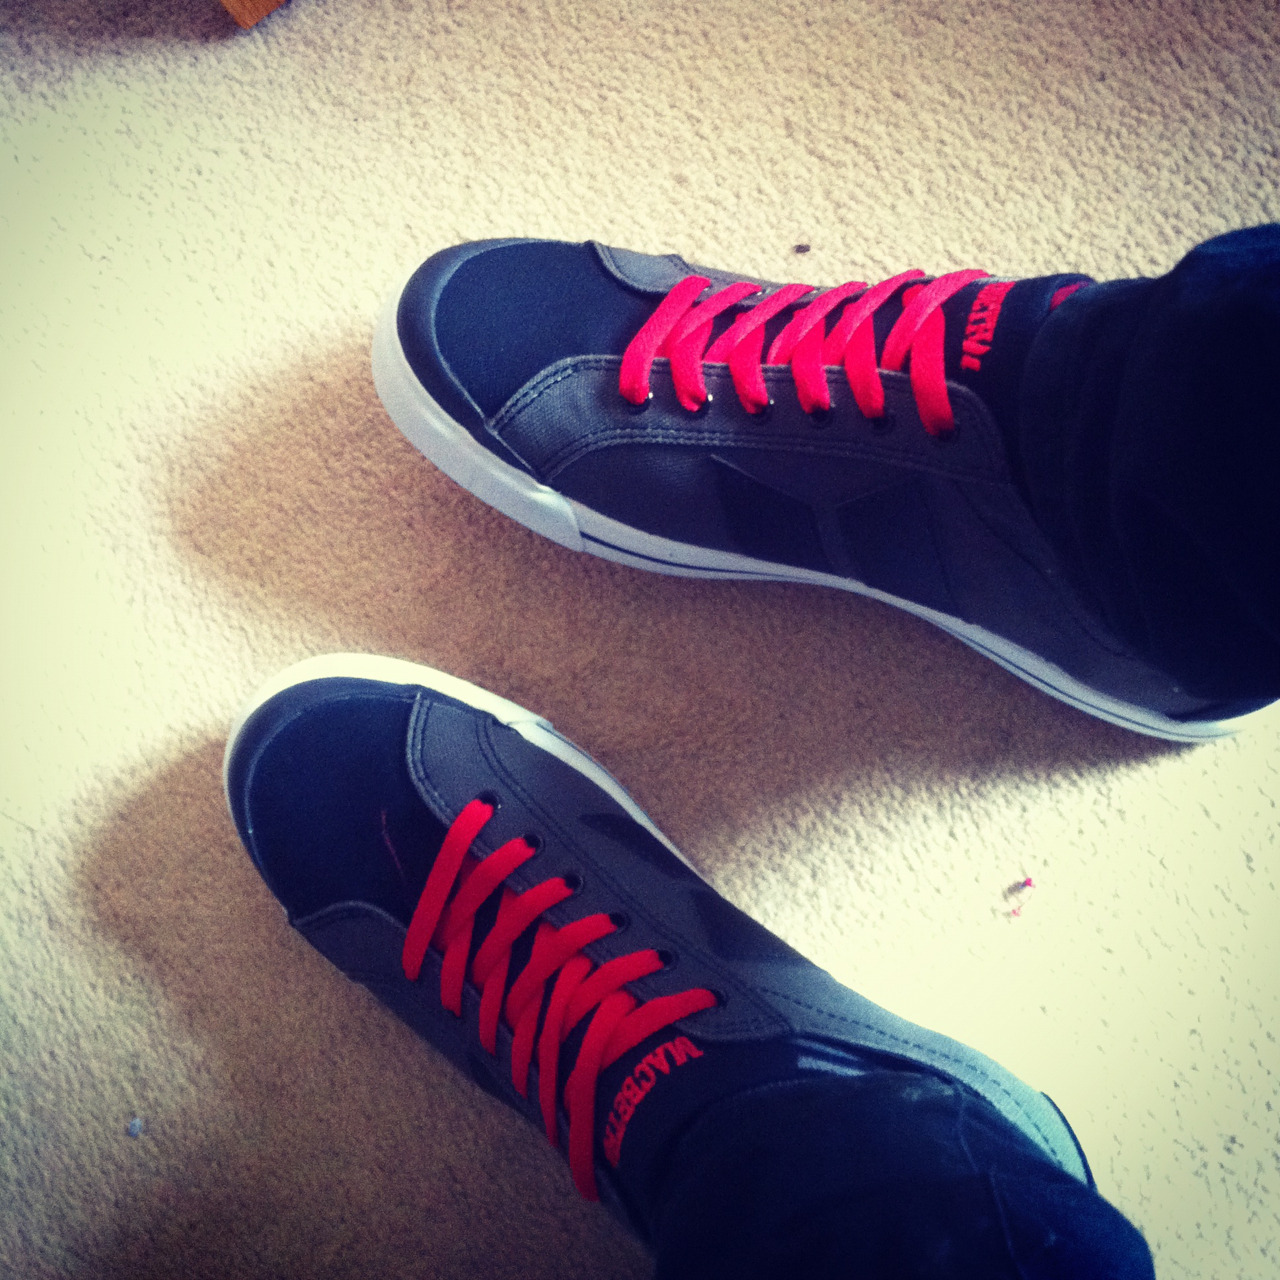 New Macbeth's yeah!